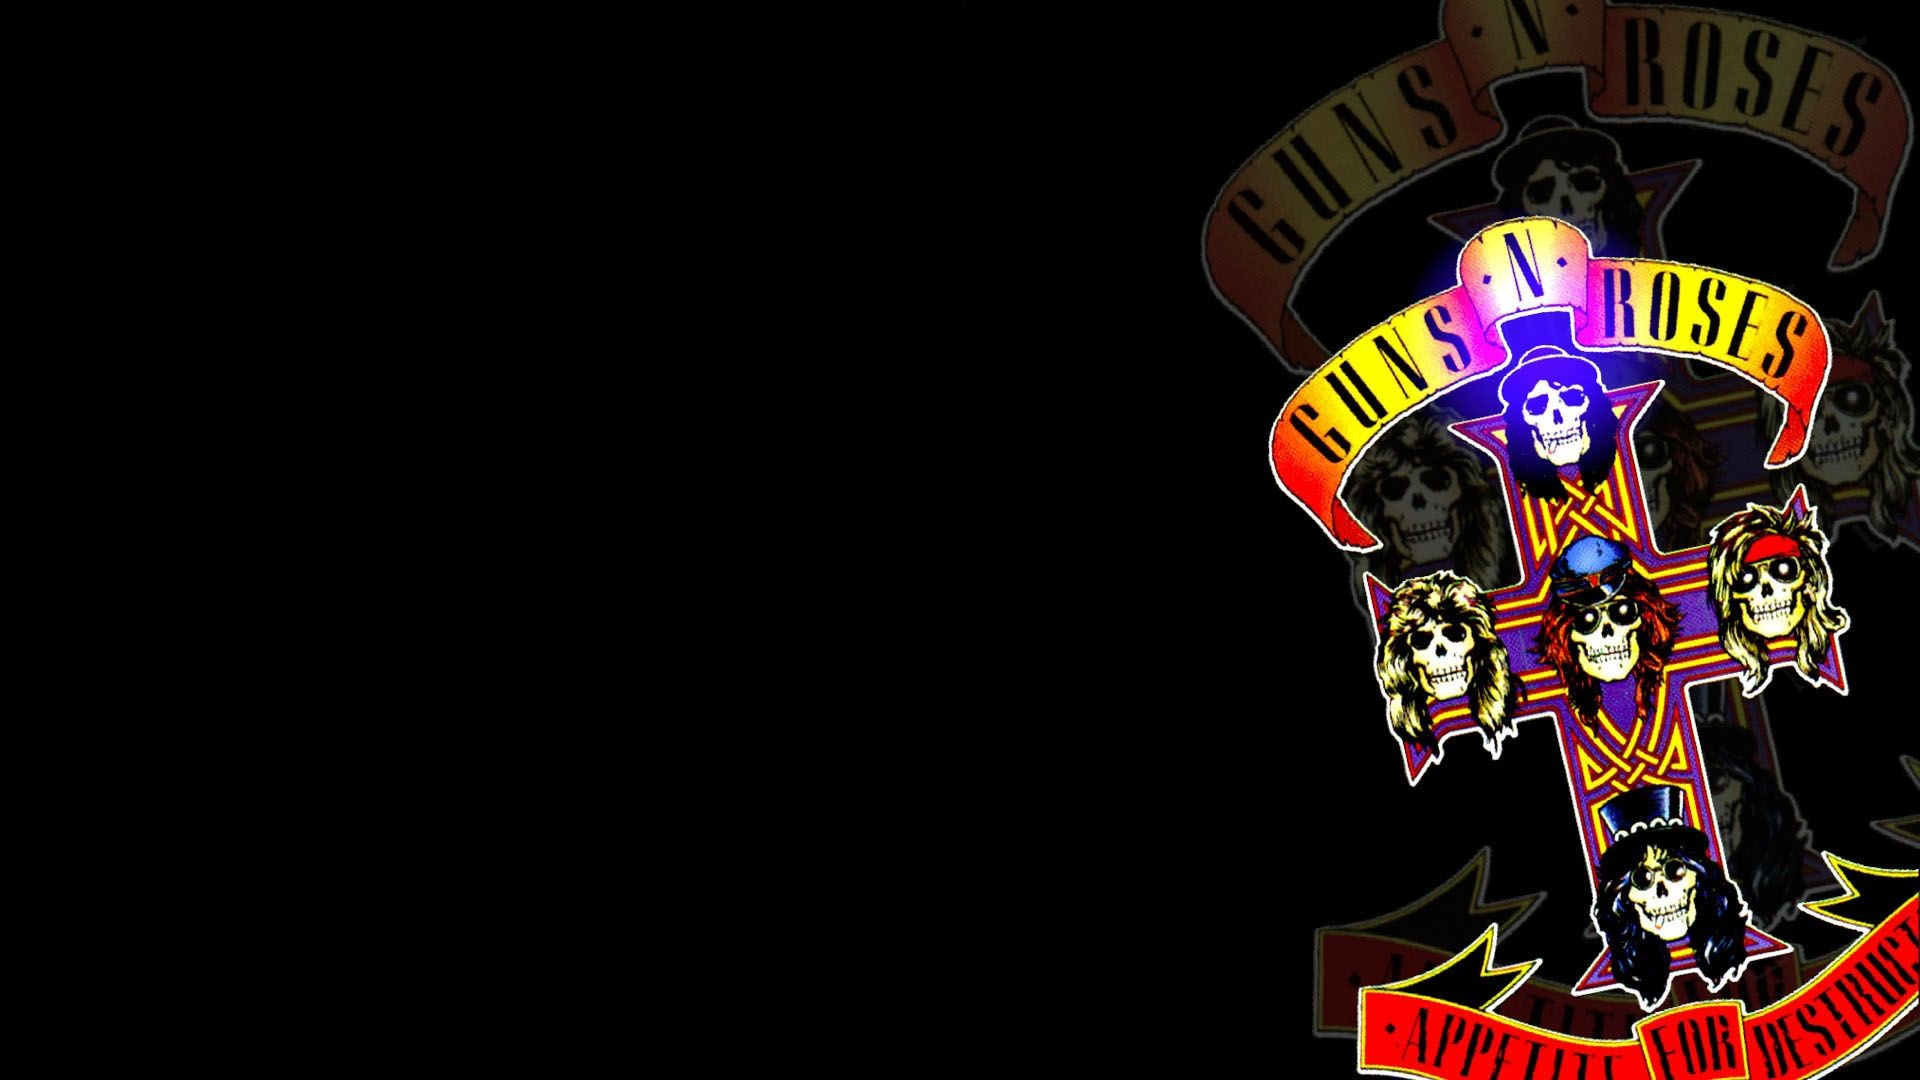 Res: 1920x1080, Guns N Roses HD Wallpapers Backgrounds Wallpaper 1920×1080 Guns And Roses  Wallpapers (42 Wallpapers) | Adorable Wallpapers